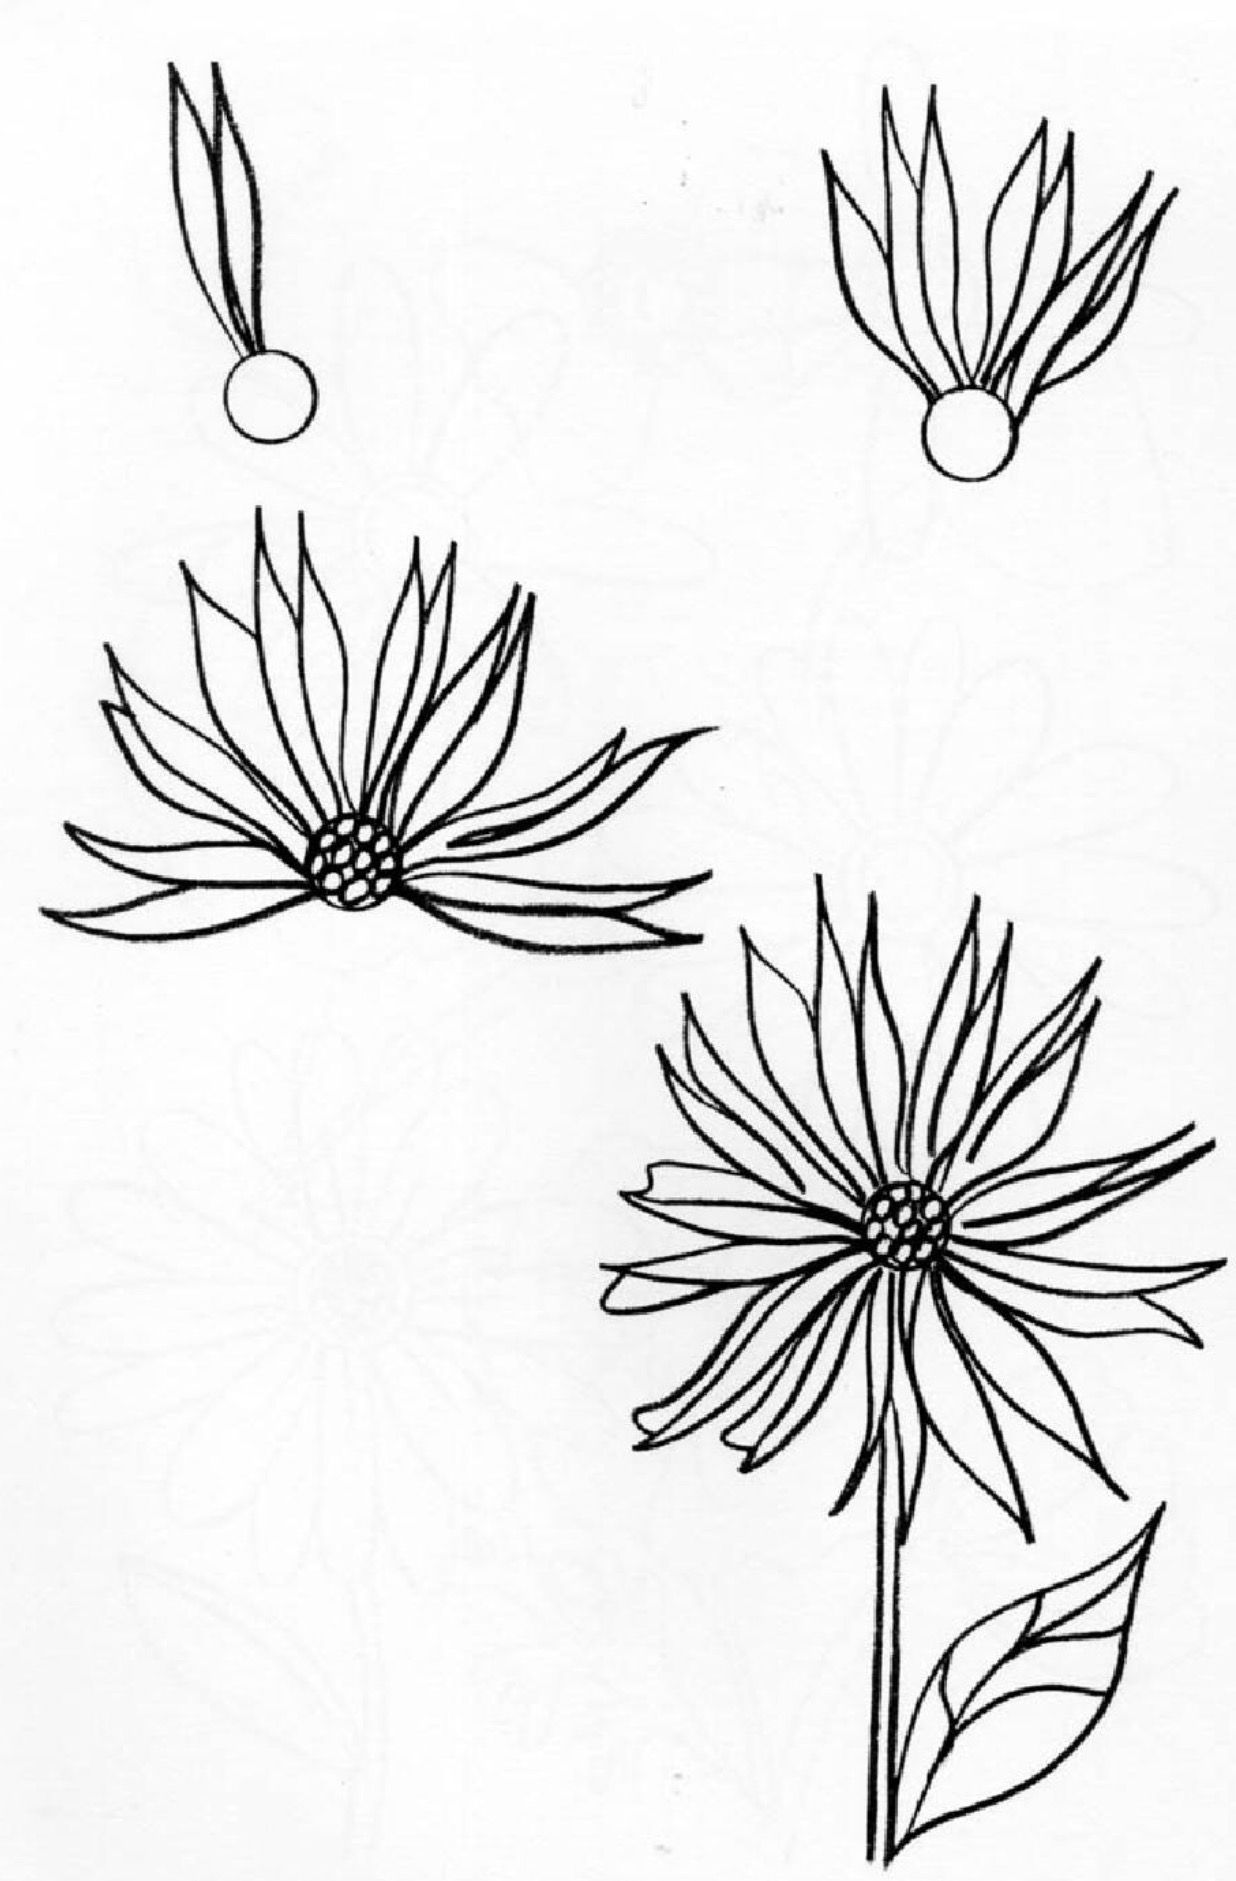 Pin by Lori Gagnon on How To Draw (With images) Flower